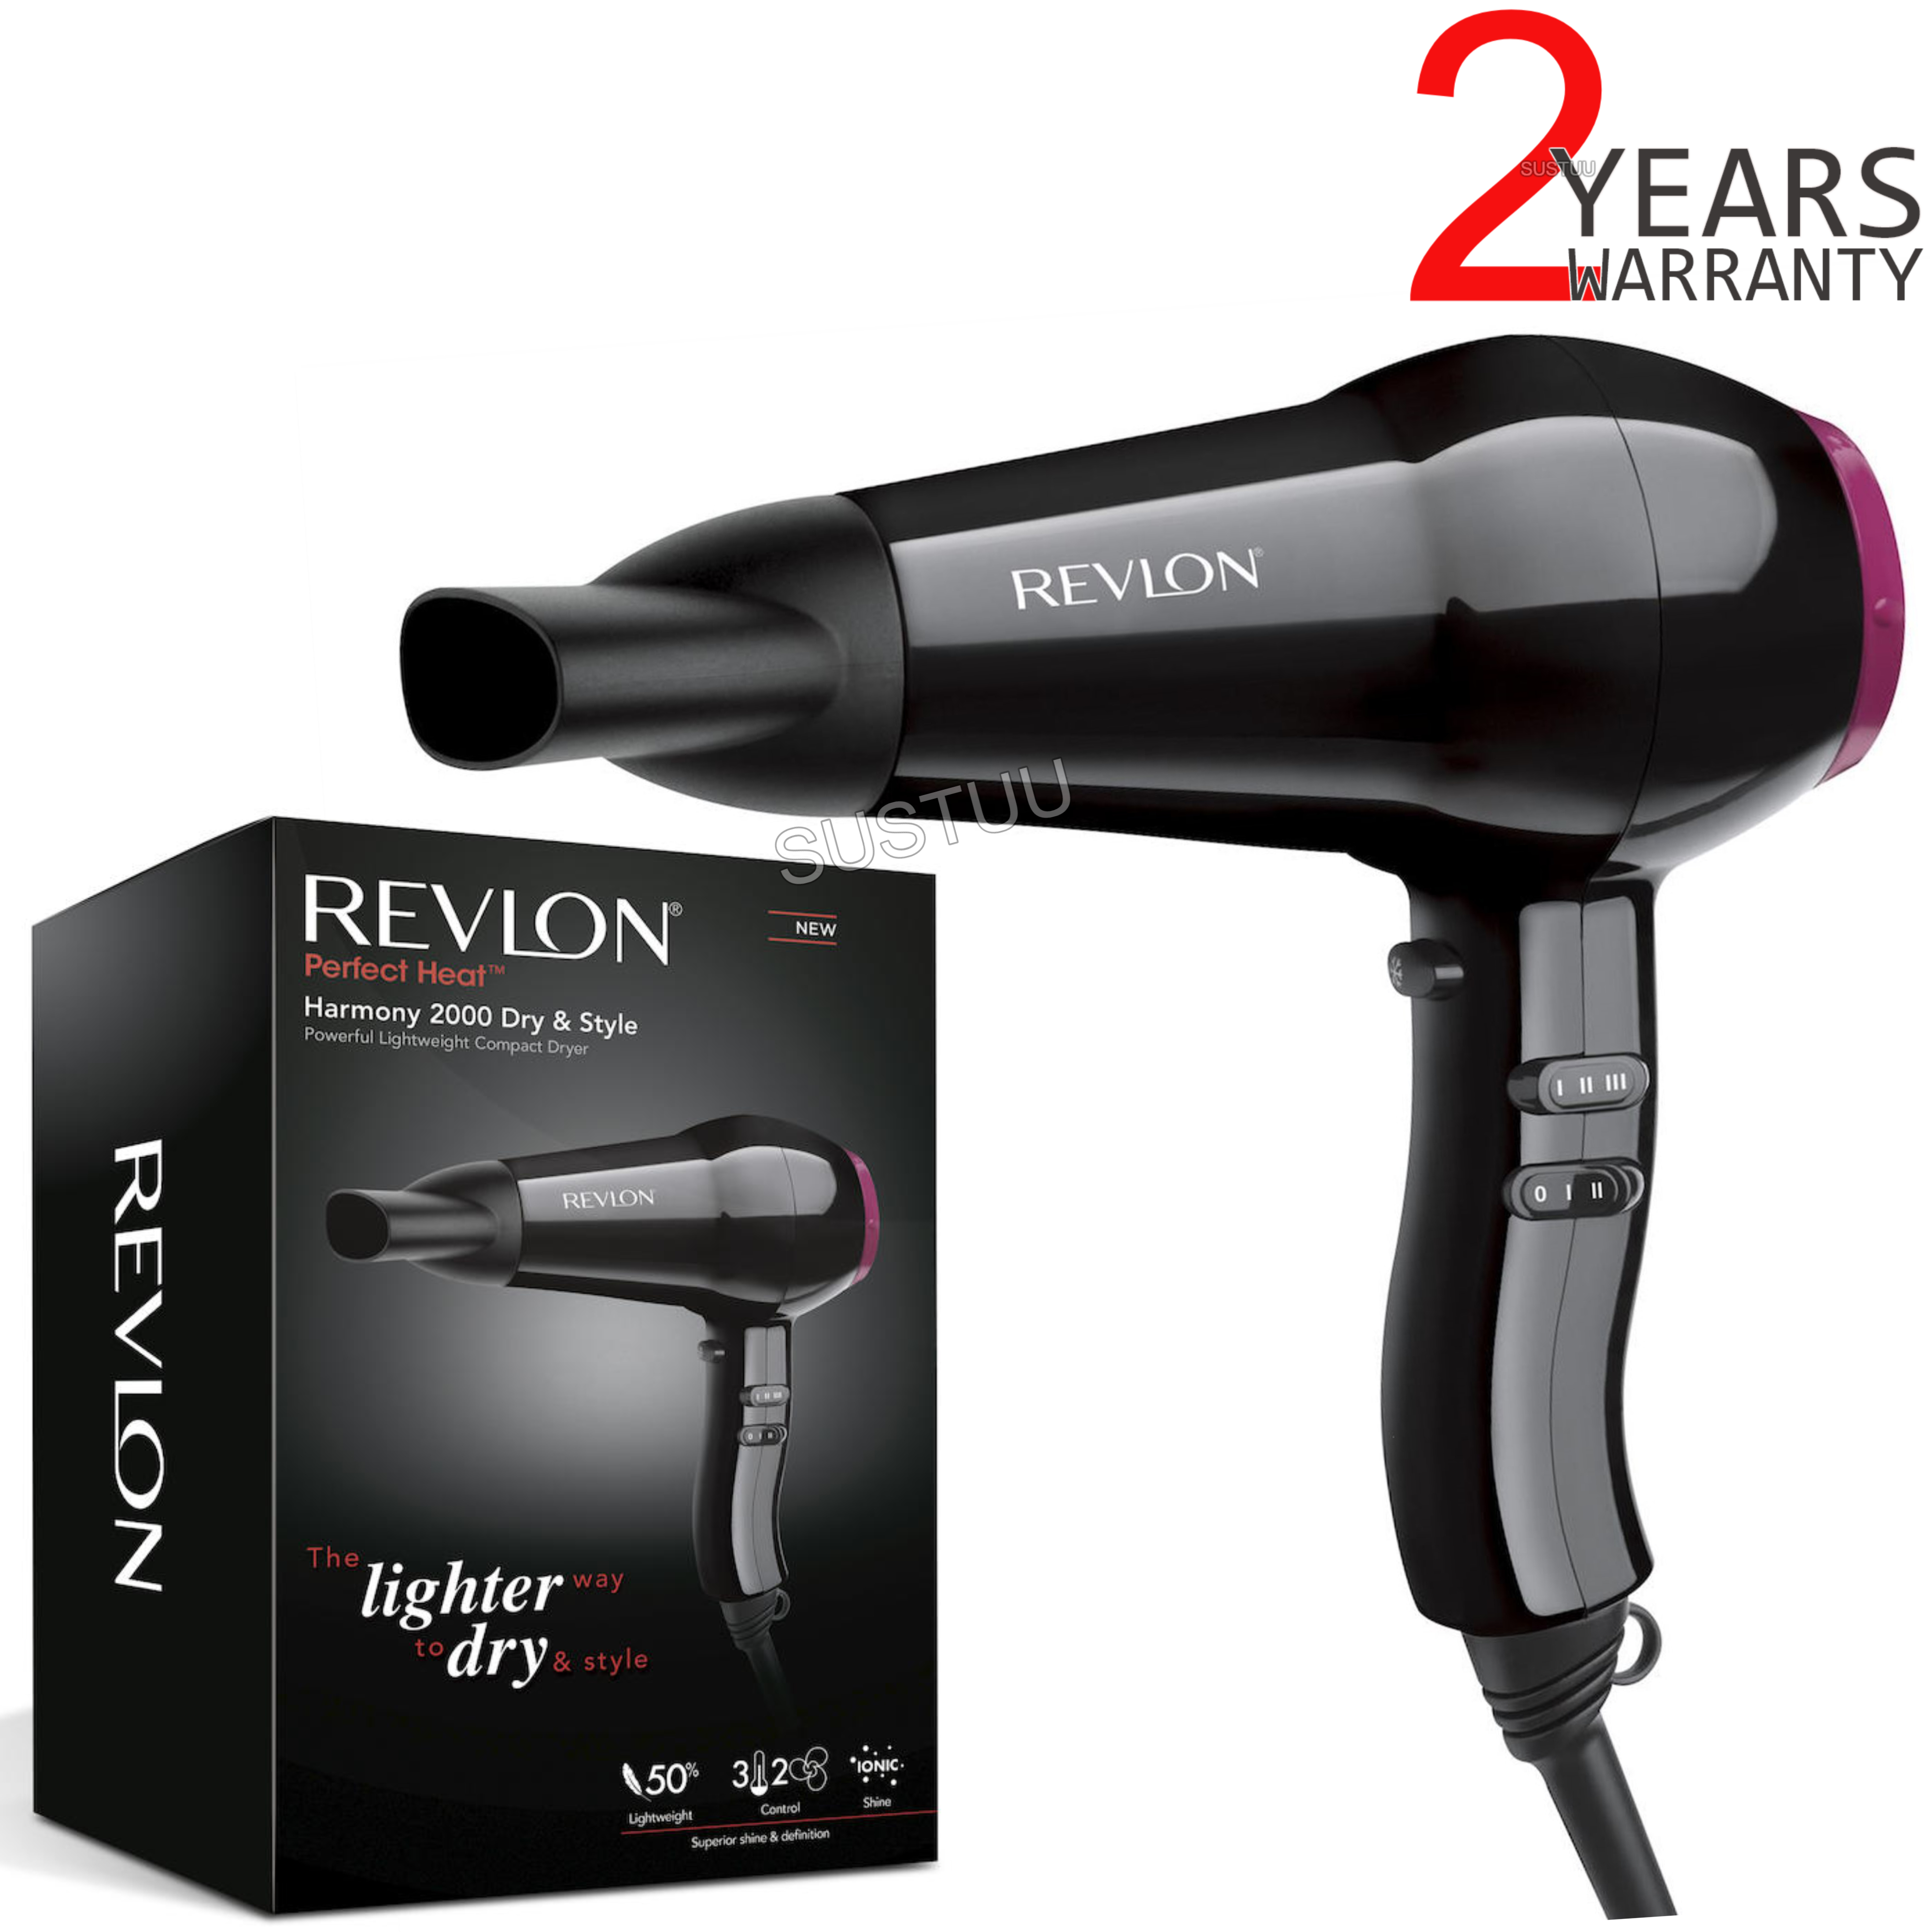 Revlon Perfect Heat Fast & Light Hair Dryer/Blower | Ionic Technology | 2000W | DR5823